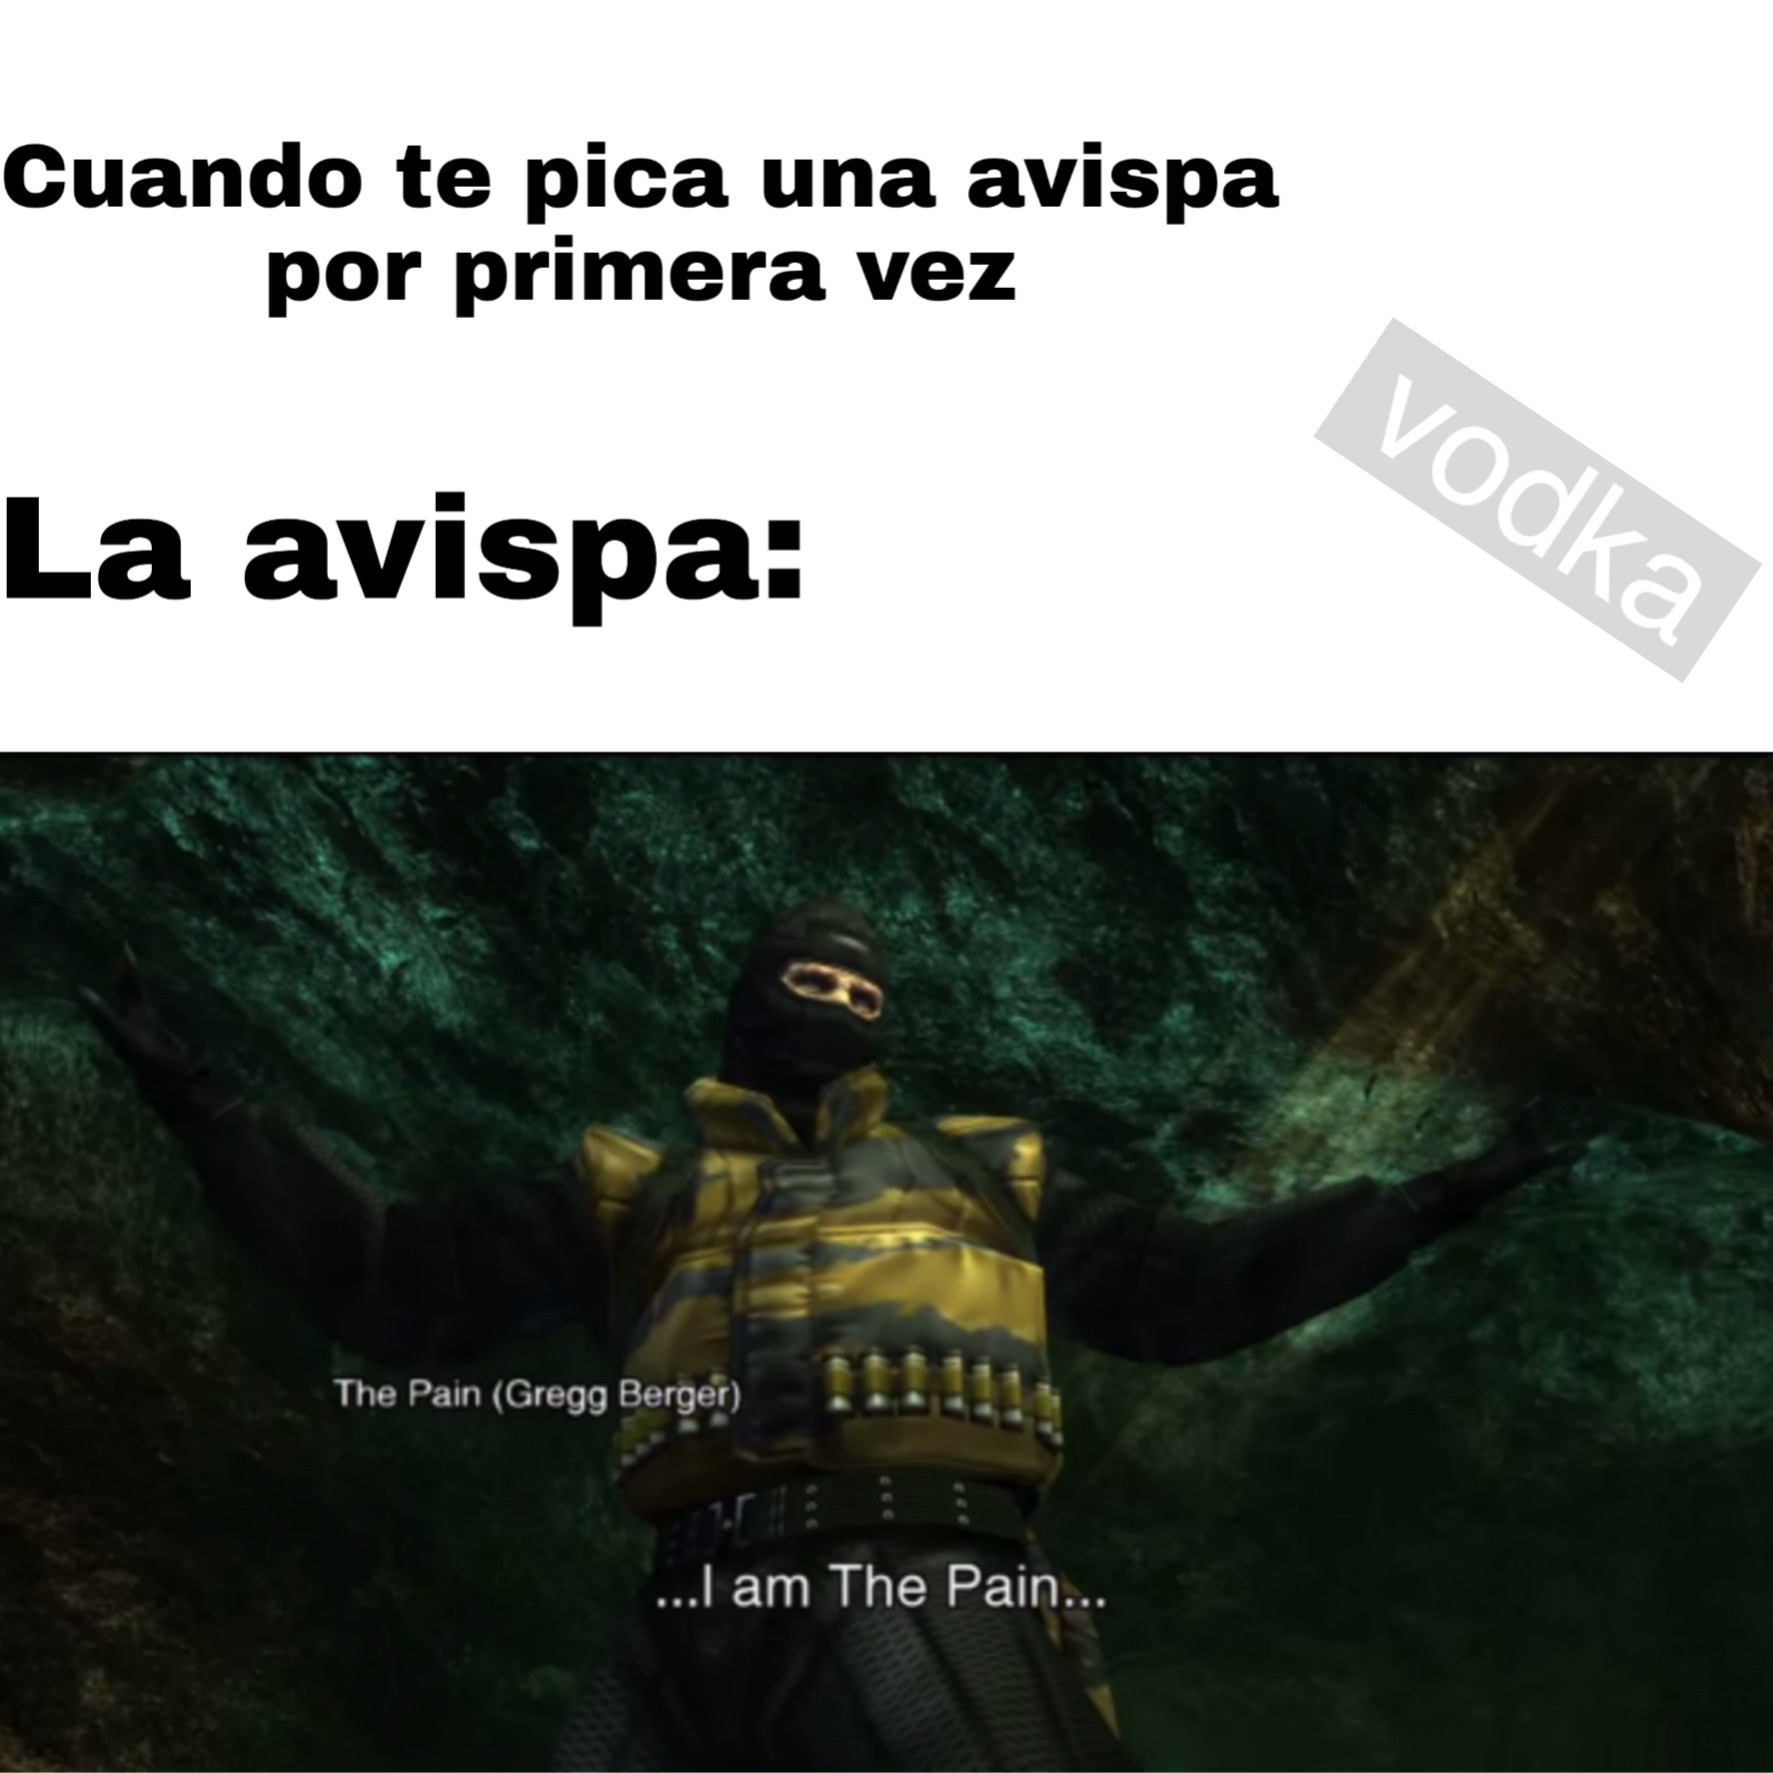 Meme de mgs3 (Esta vez The Pain)